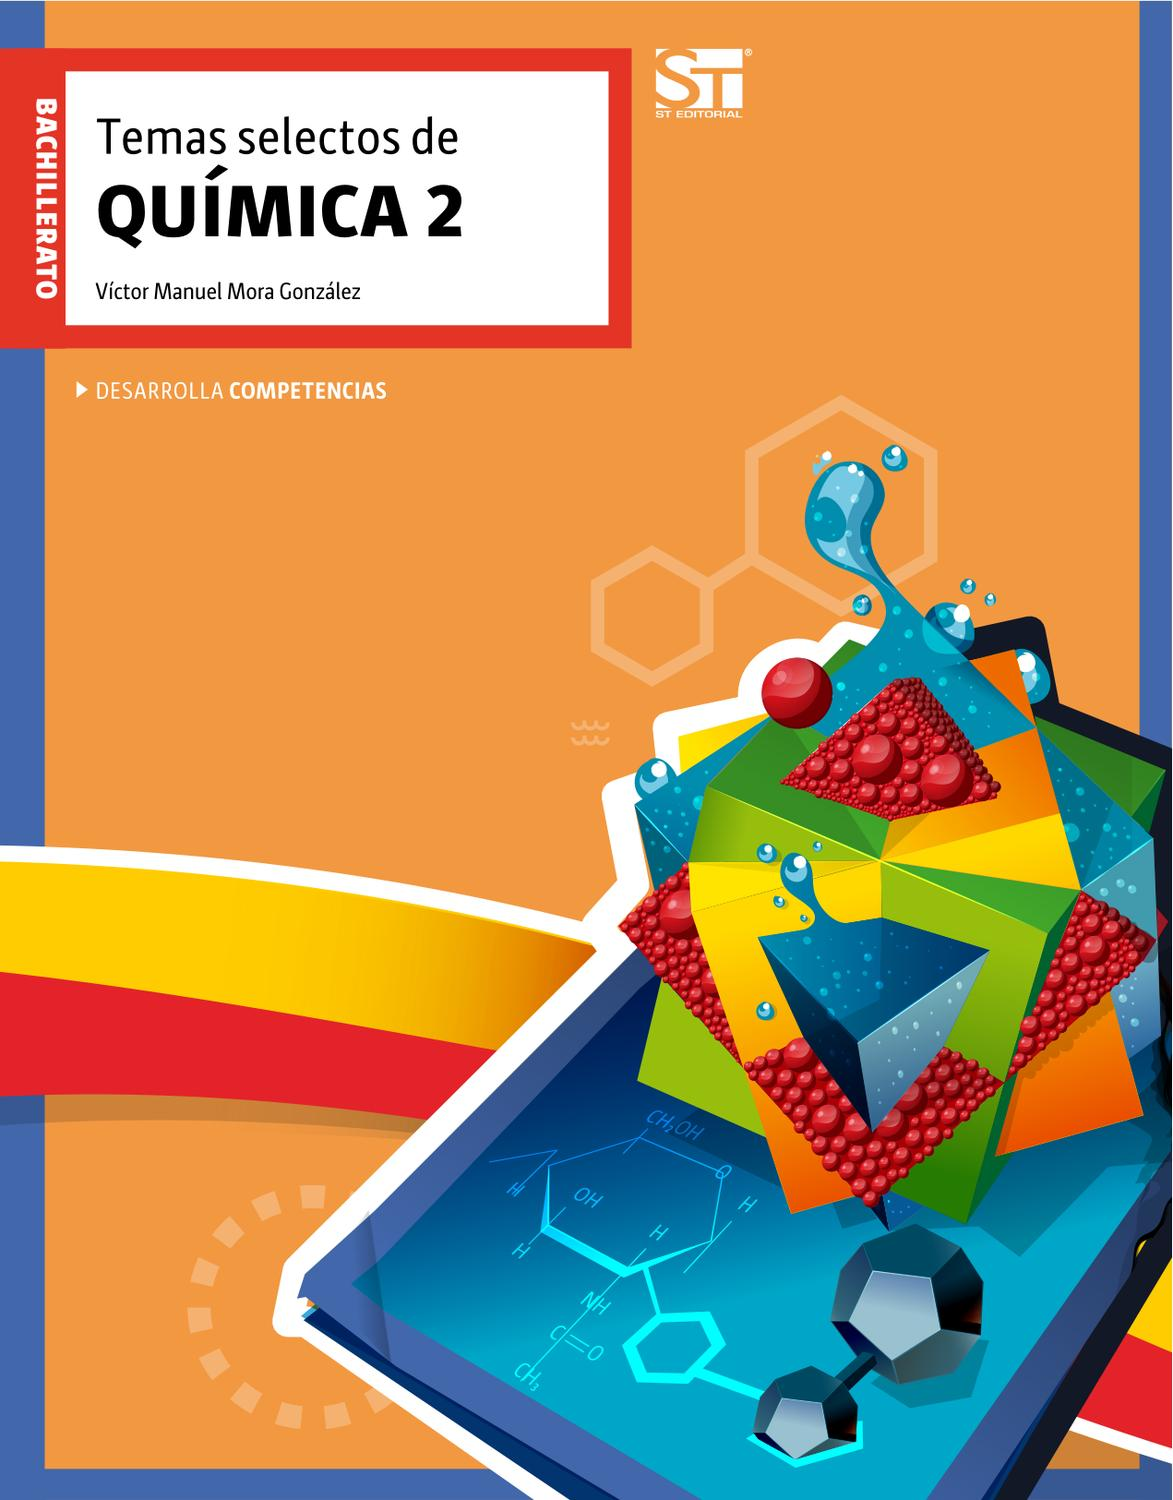 Temas selectos de química 2 by eseté editorial - issuu